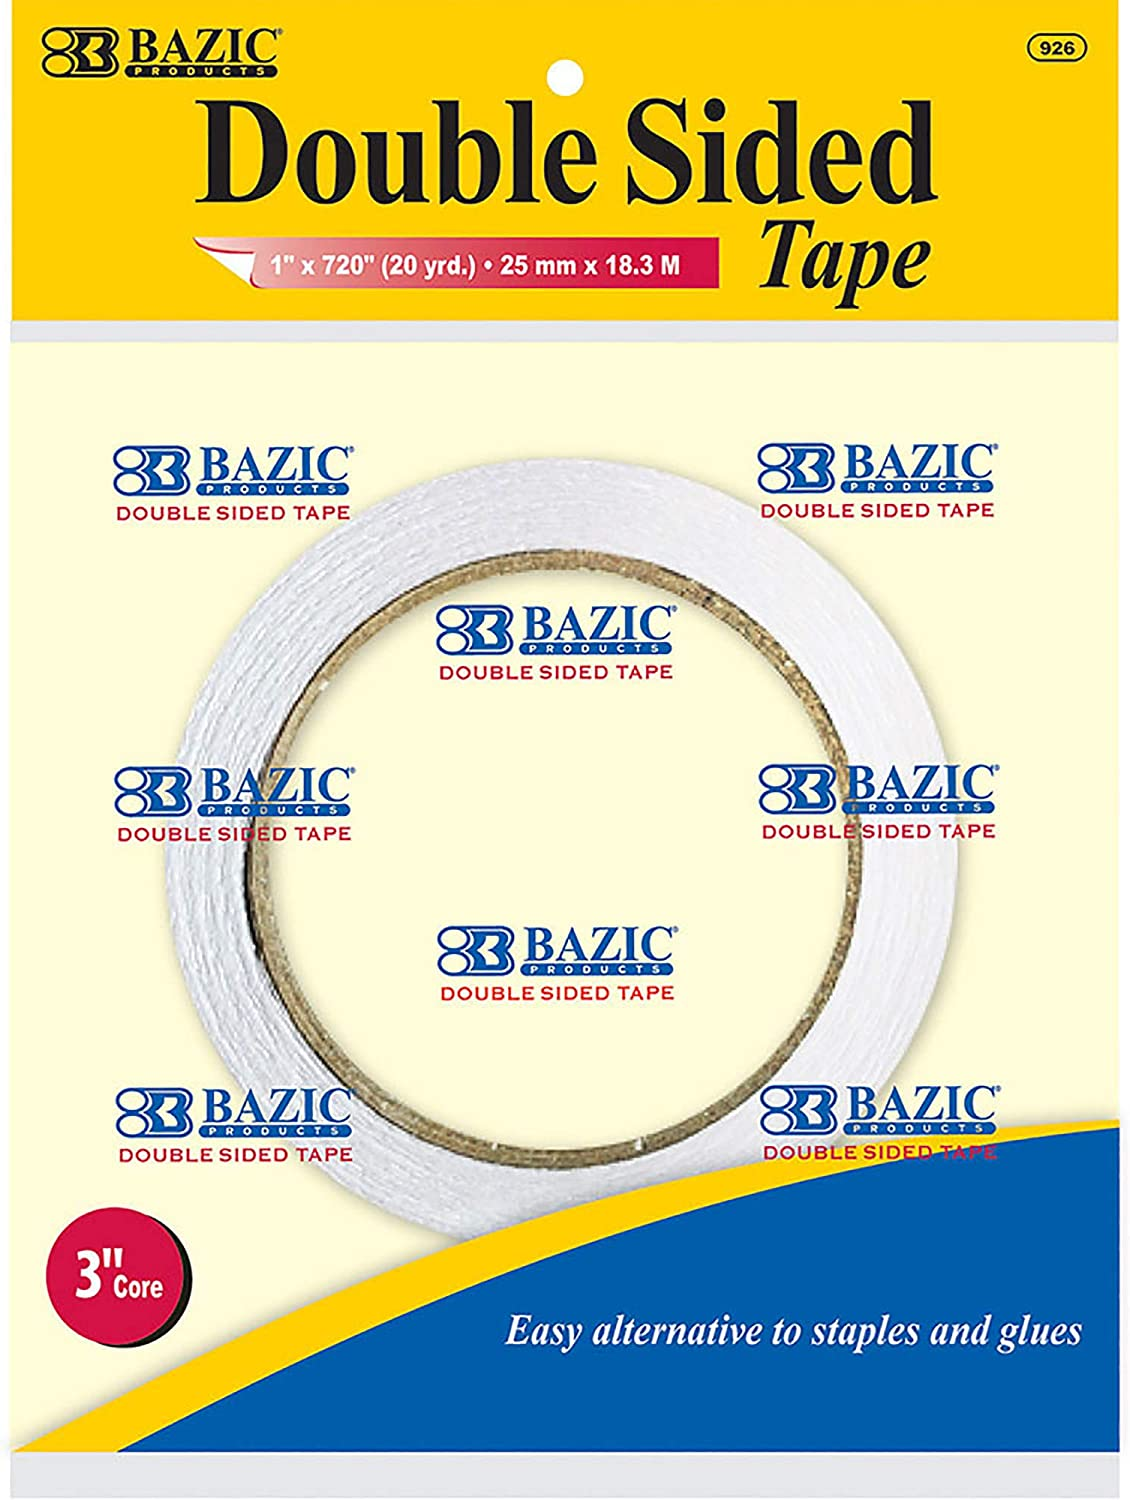 "BAZIC 1"" X 20 Yard (720"") Double Sided Tape, Clear Sticky Adhesive Tapes, for Home Office Decor Gift Wrap, 2-Pack"